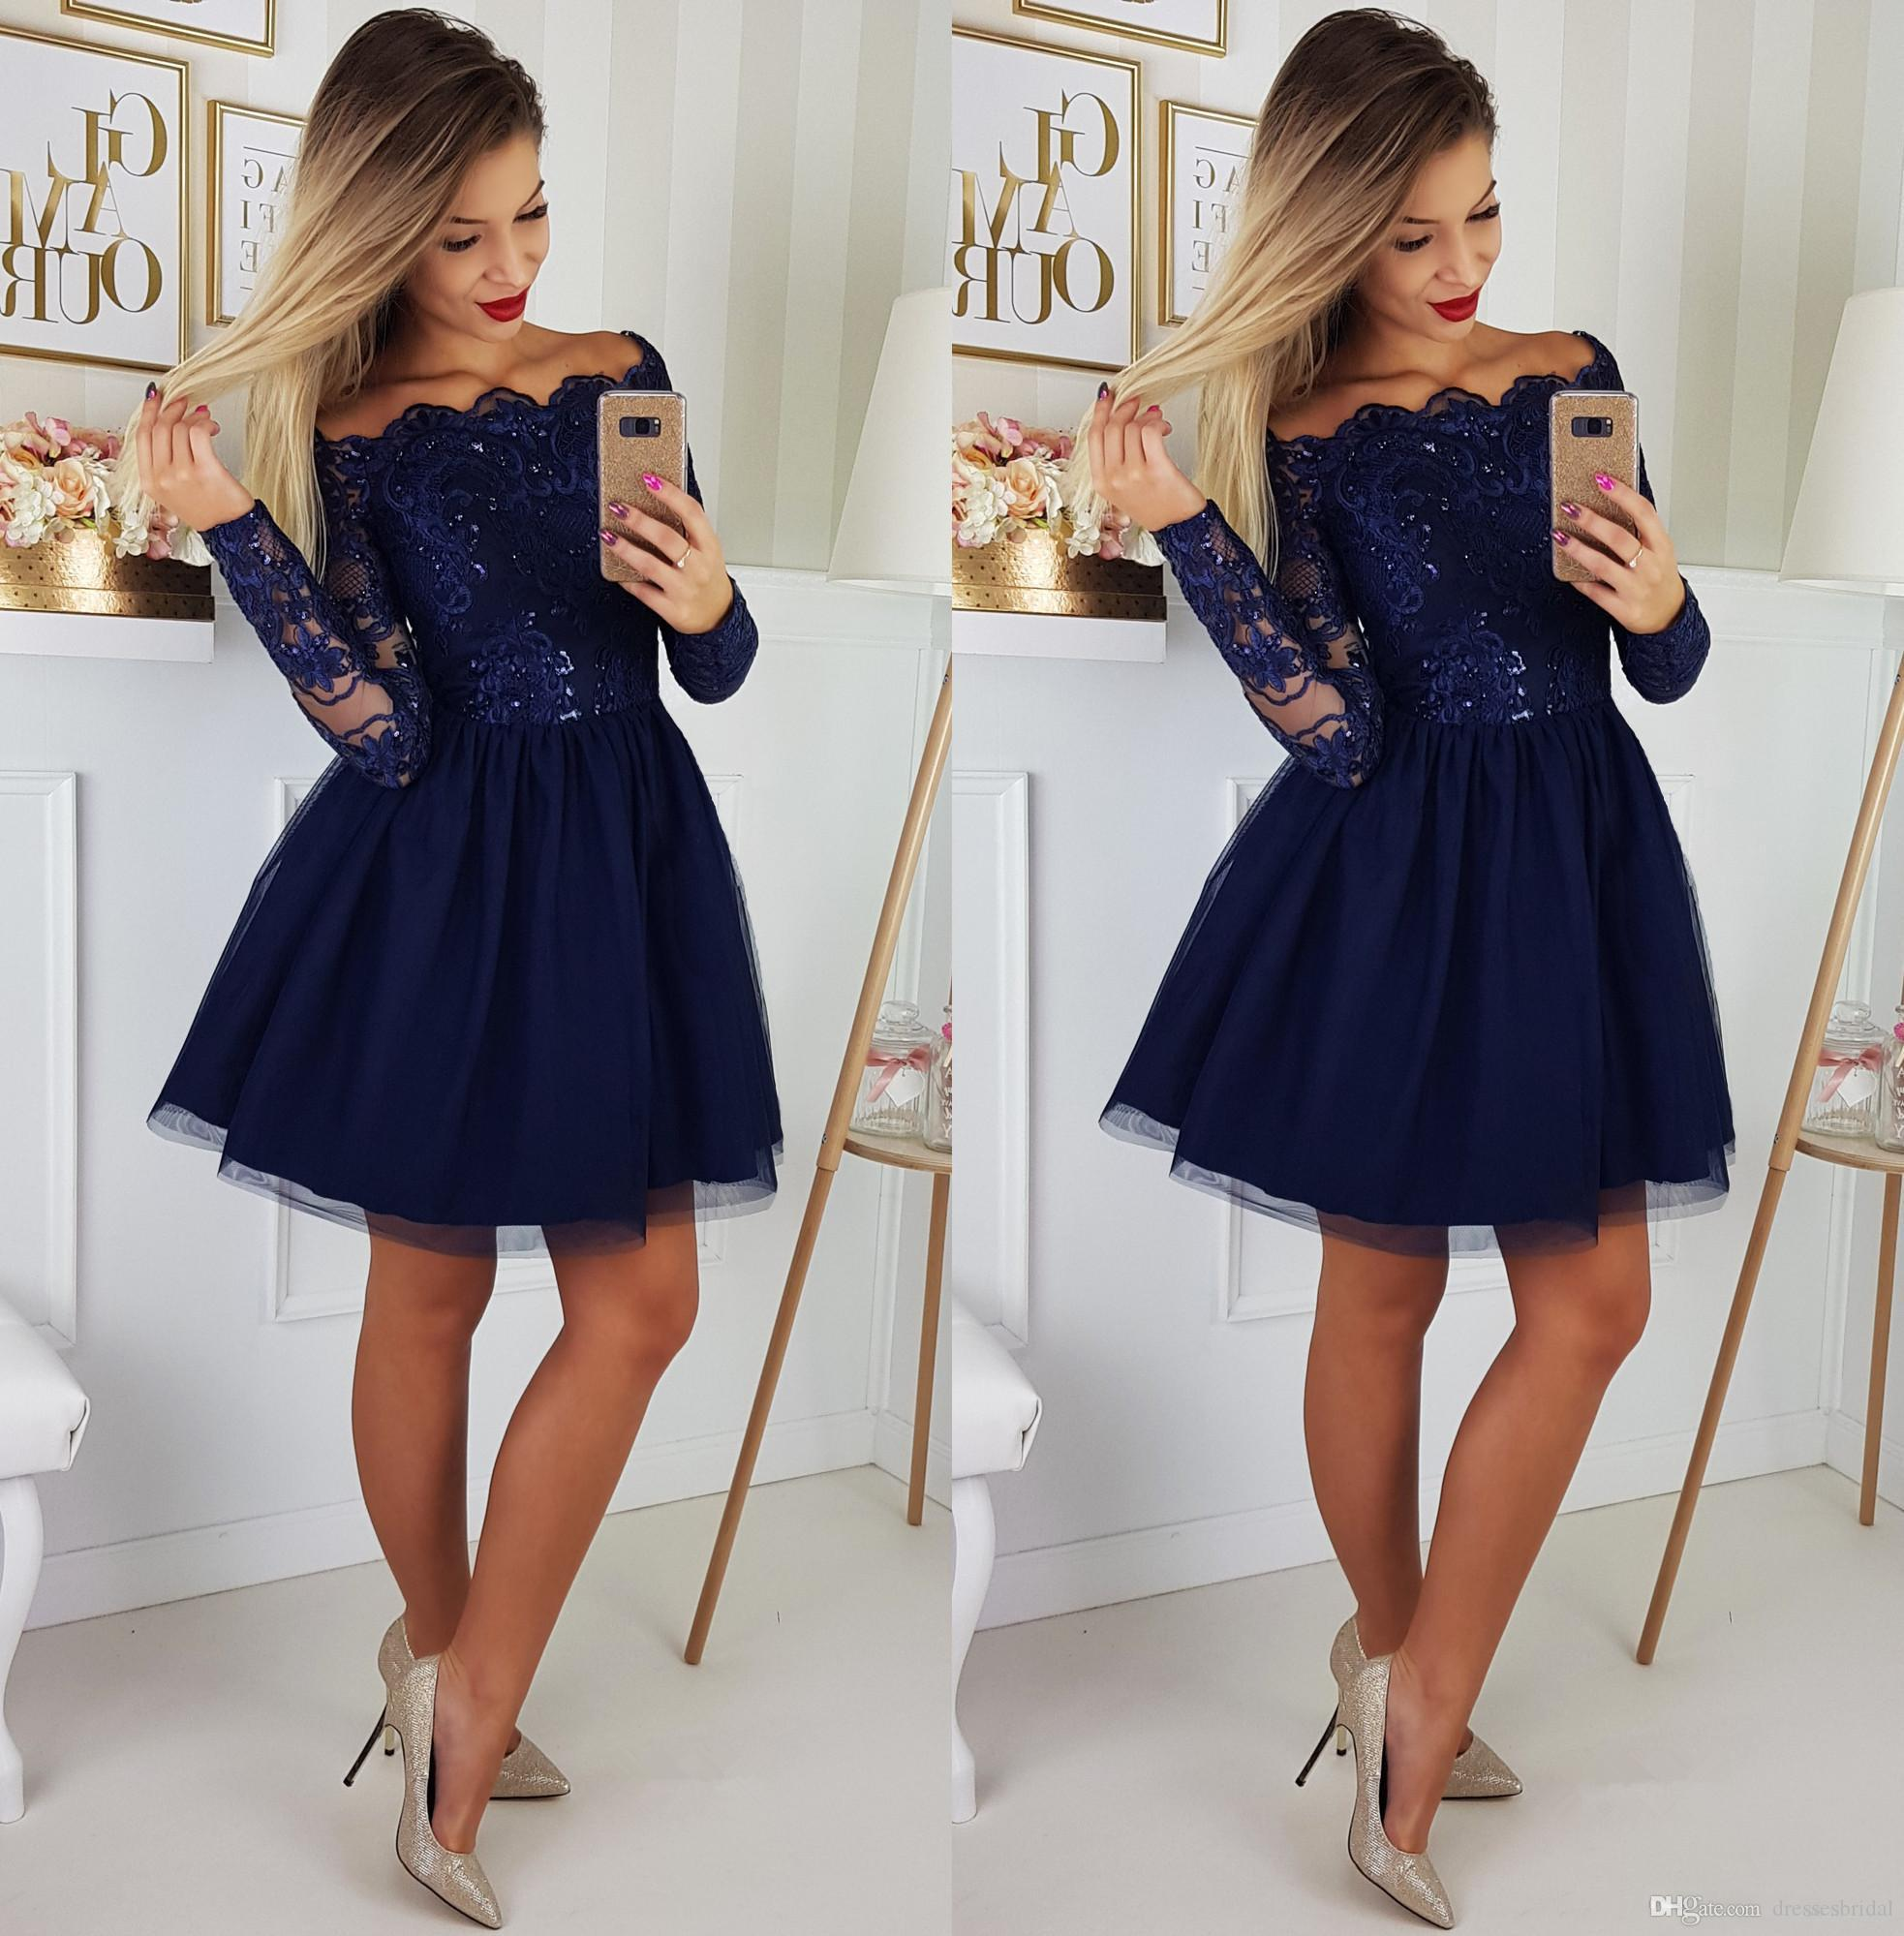 773d8972afb0 Long Sleeves Navy Blue Homecoming Dresses Knee Length Short Party Dress  Lace Prom Gowns Black And White Homecoming Dresses Black Short Homecoming  Dresses ...